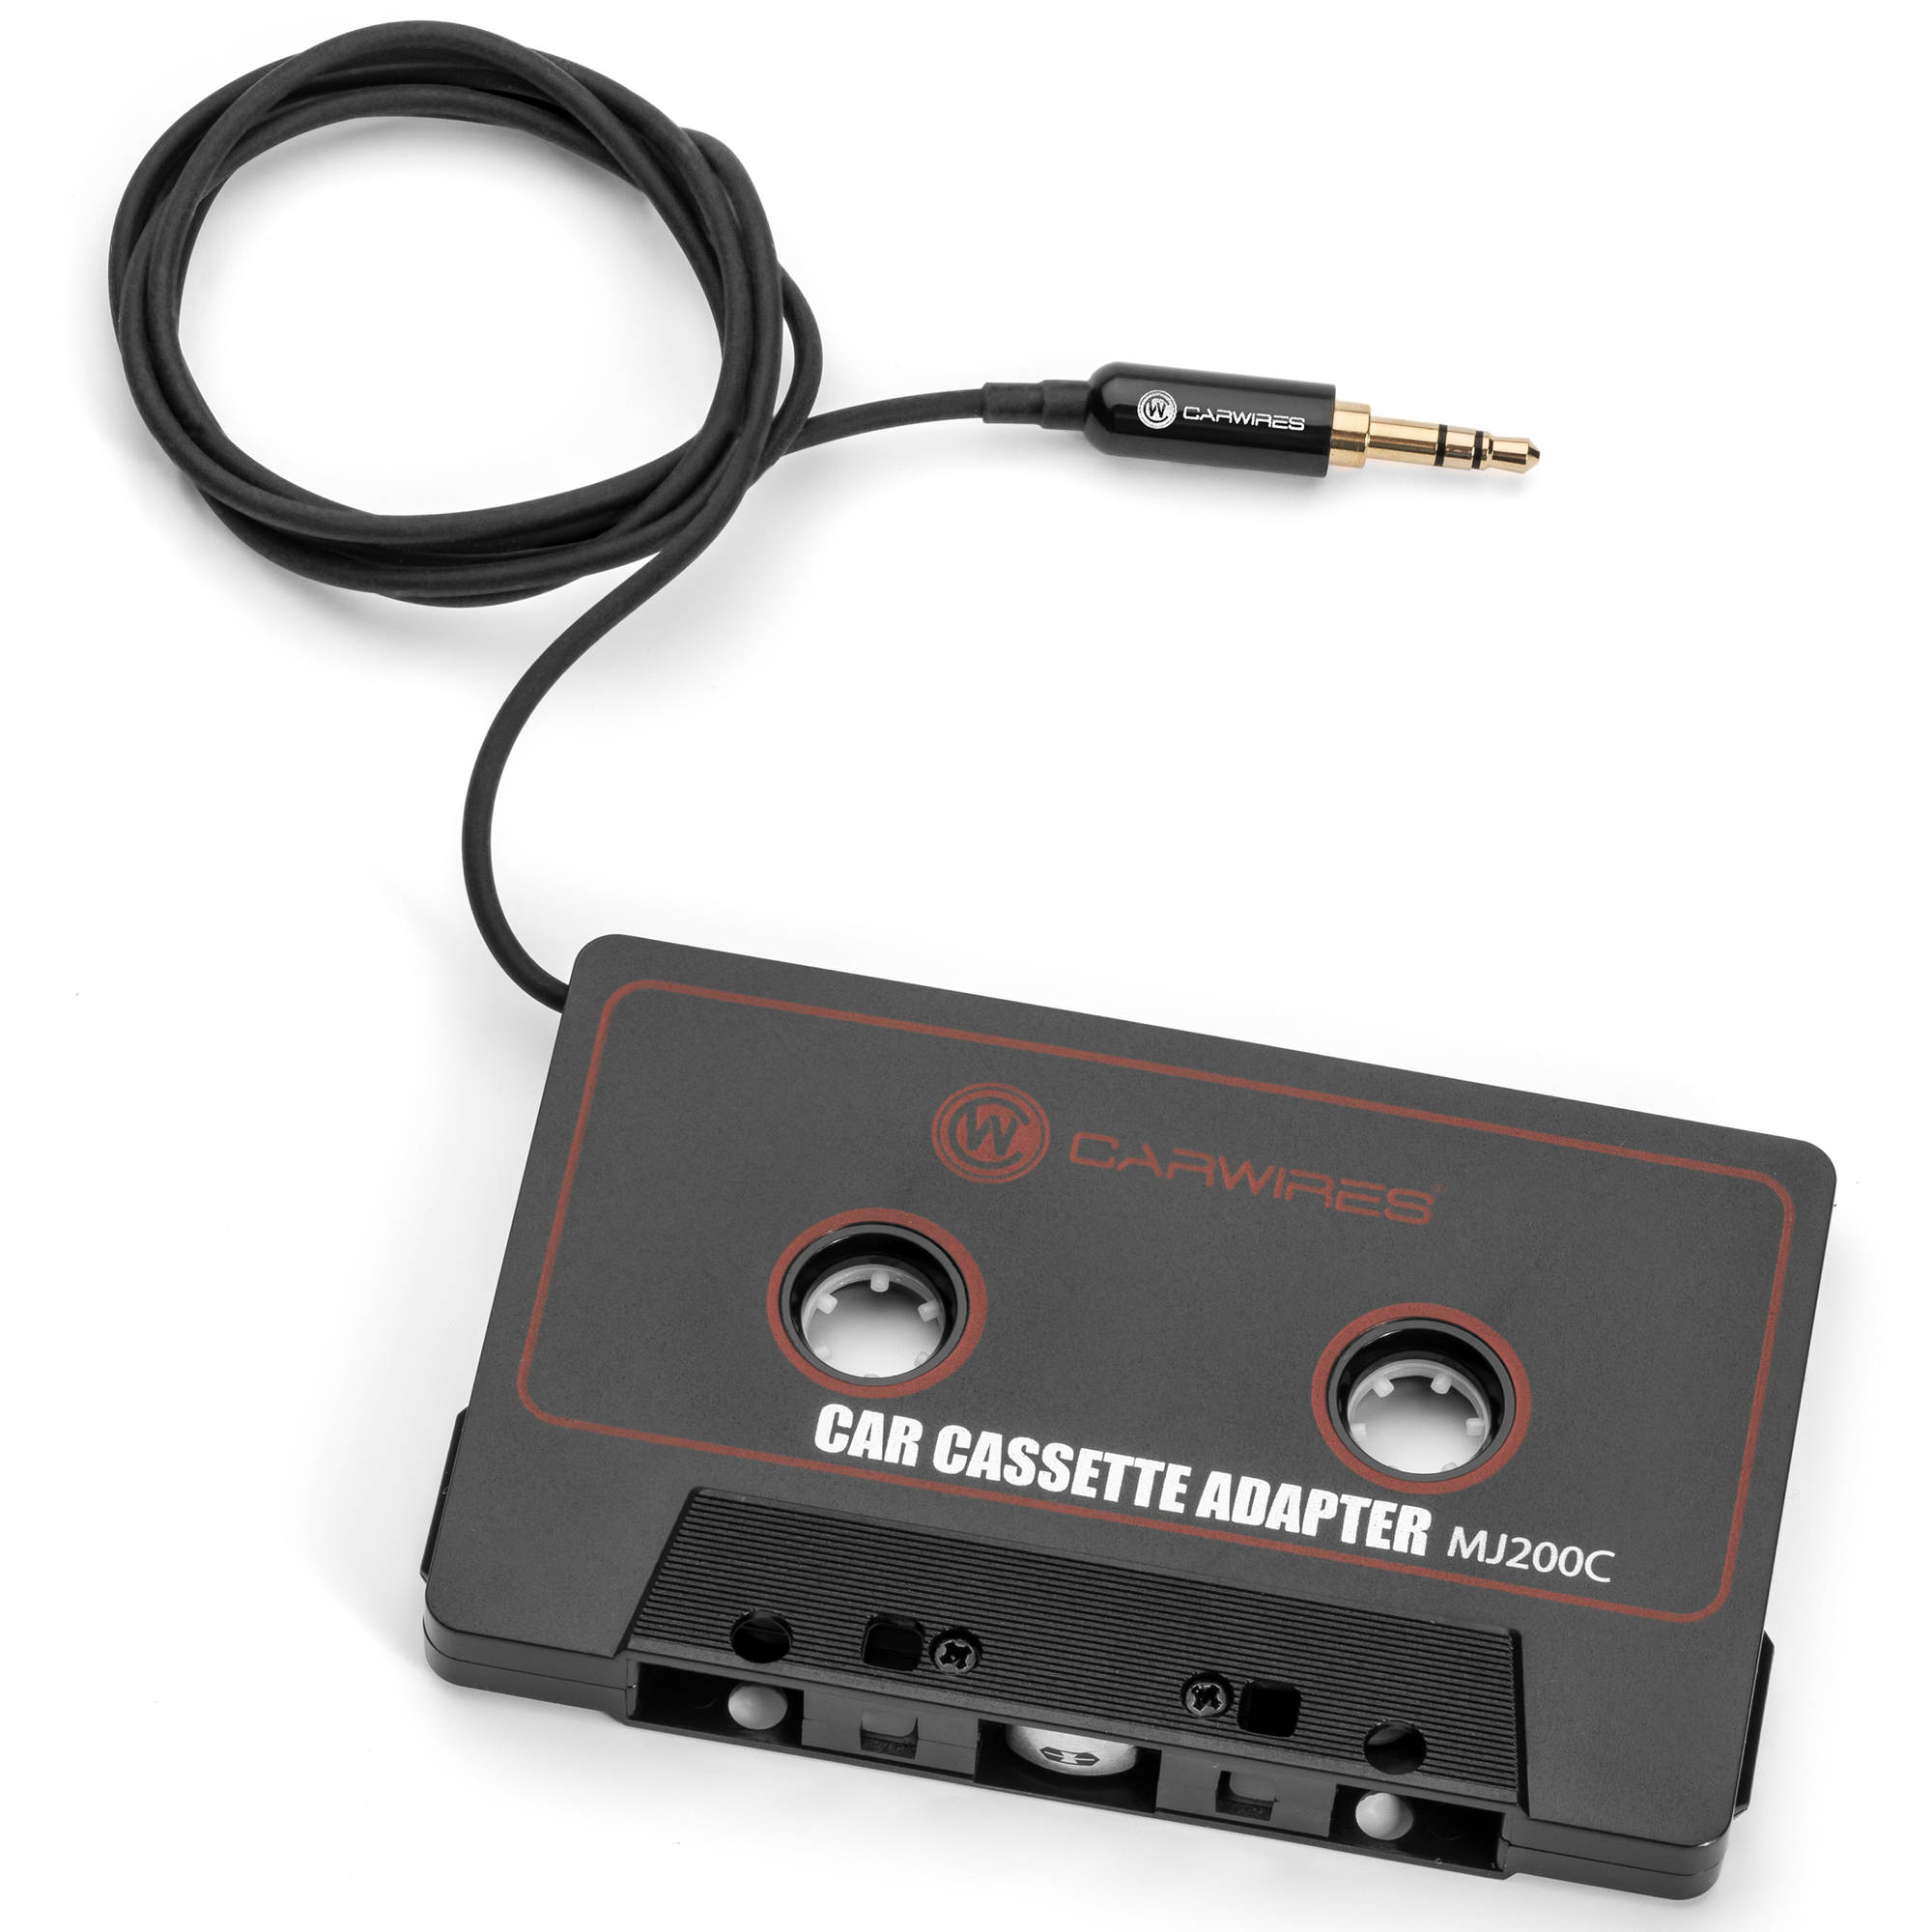 Carwires MJ200C Premium Car Cassette Adapter